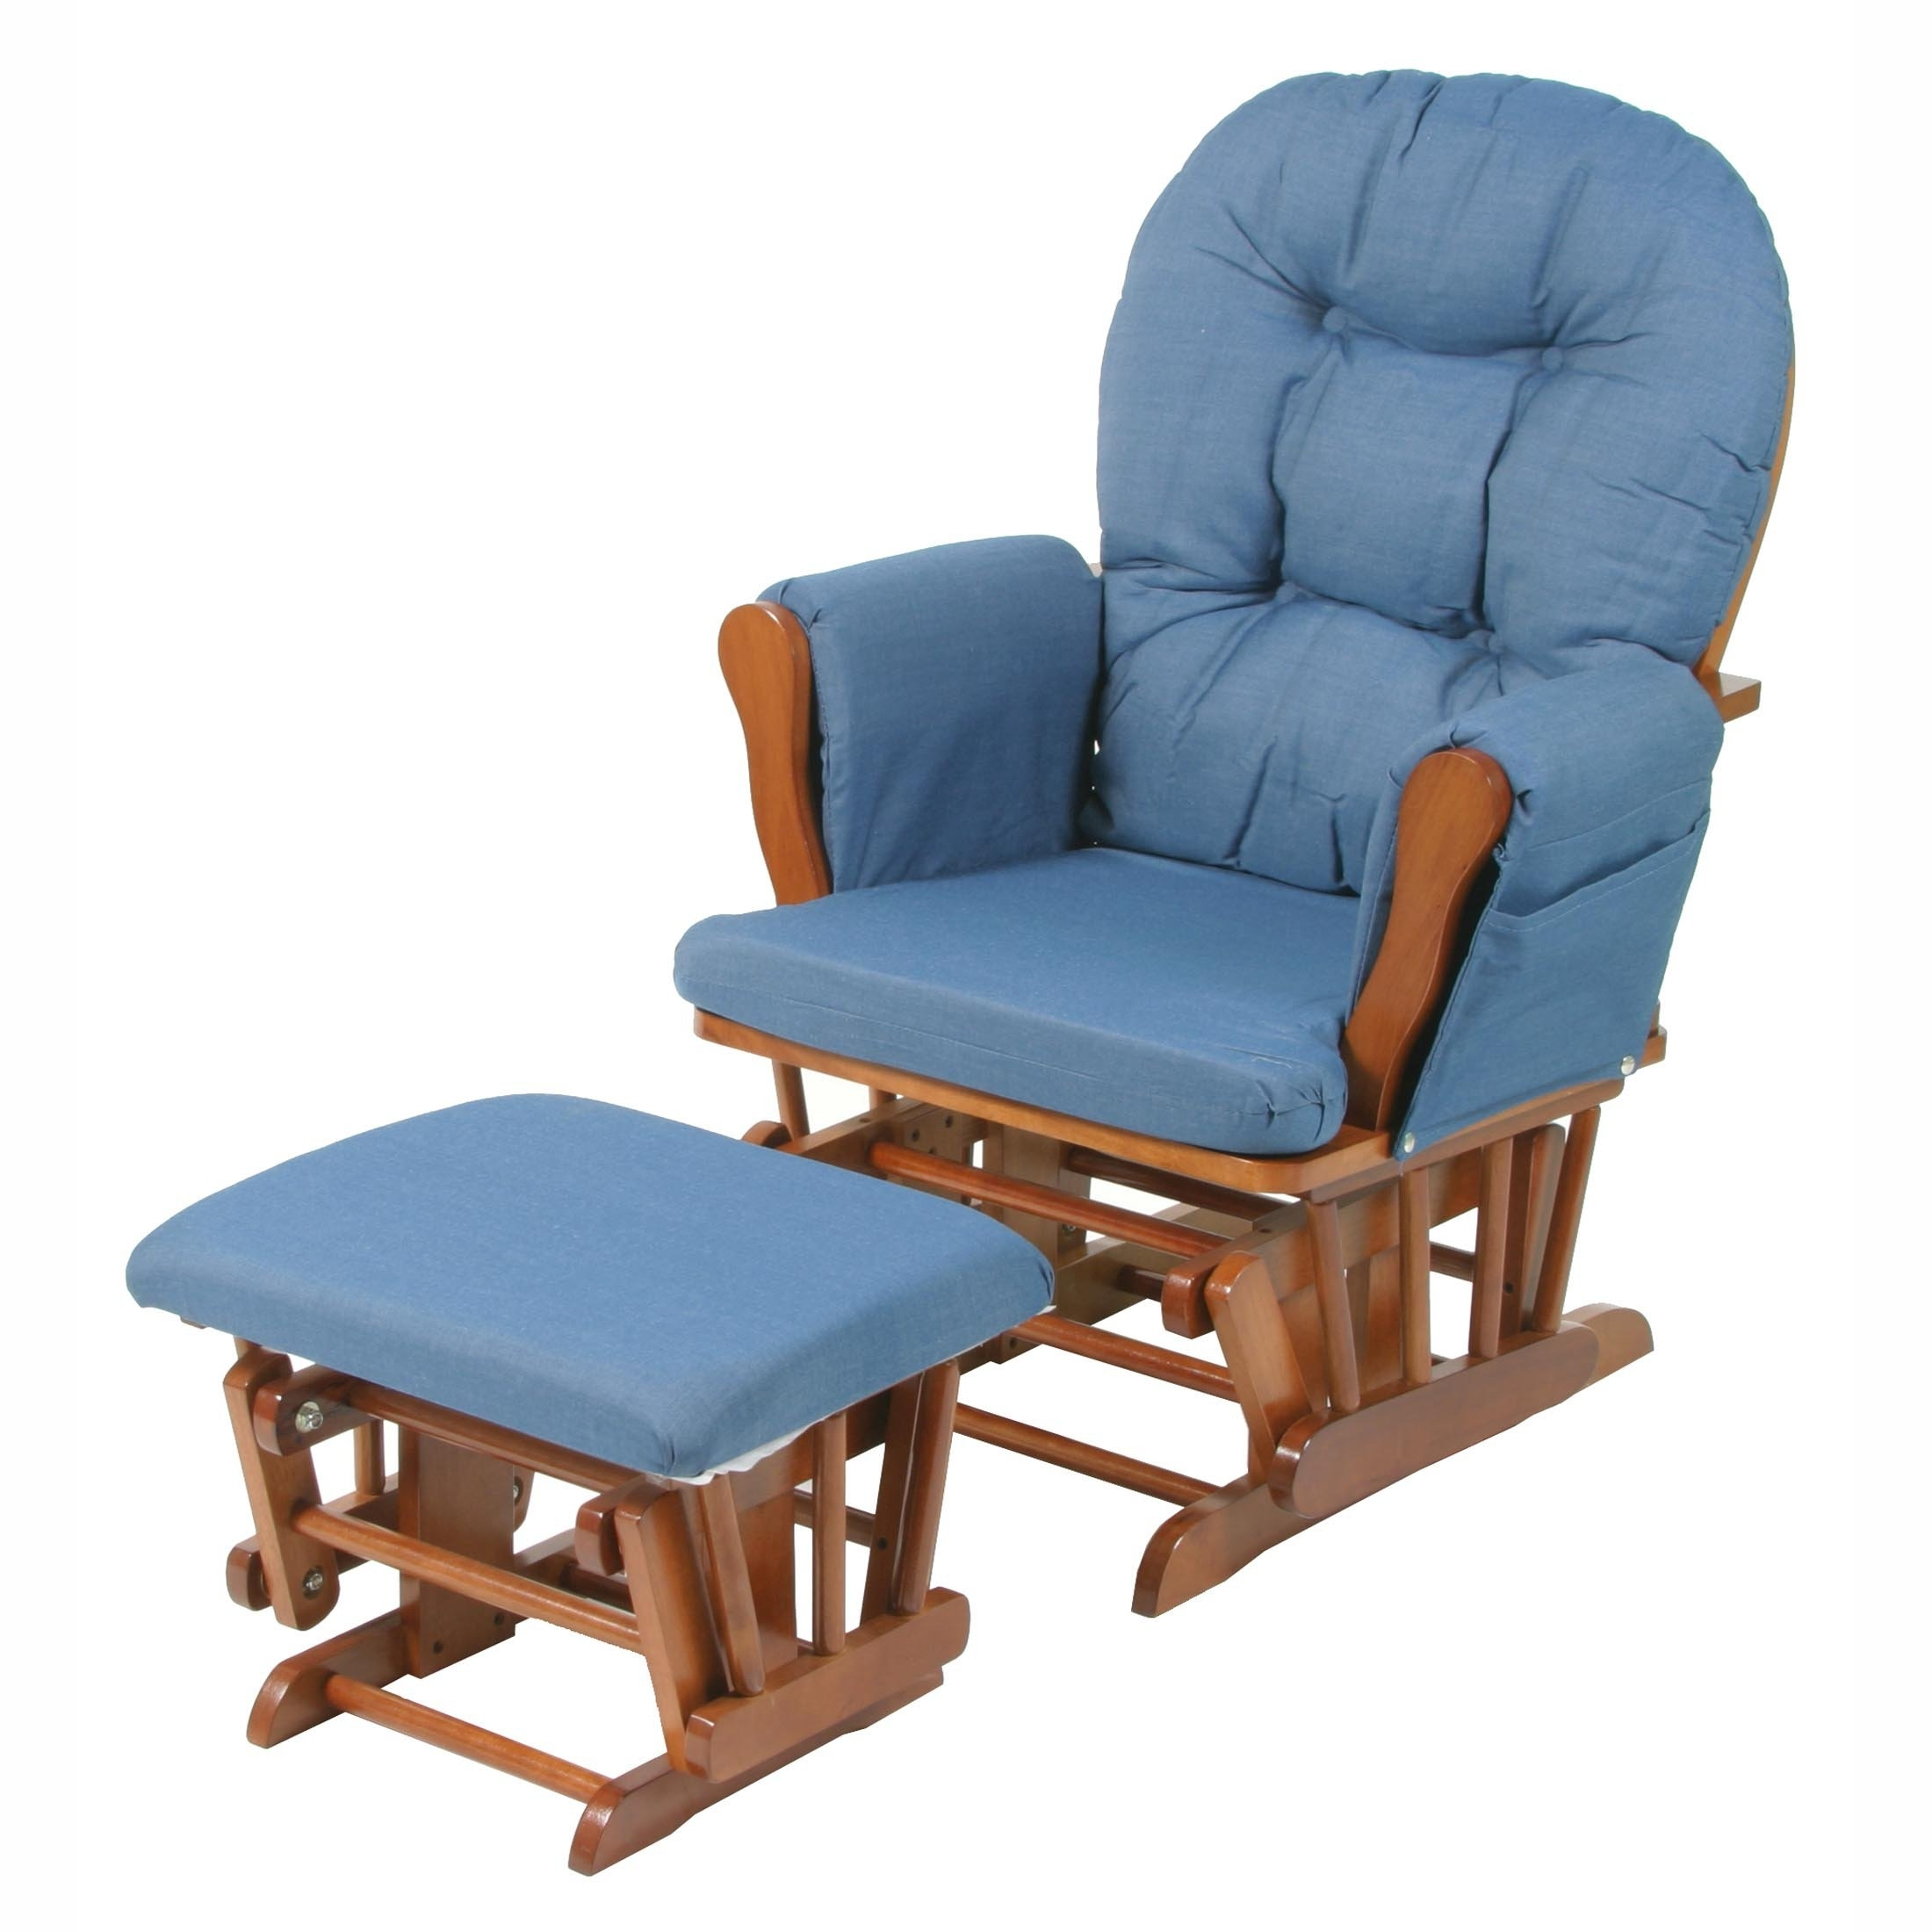 Widely Used Storkcraft Bowback Glider And Ottoman Set – Cognac/denim (View 18 of 20)